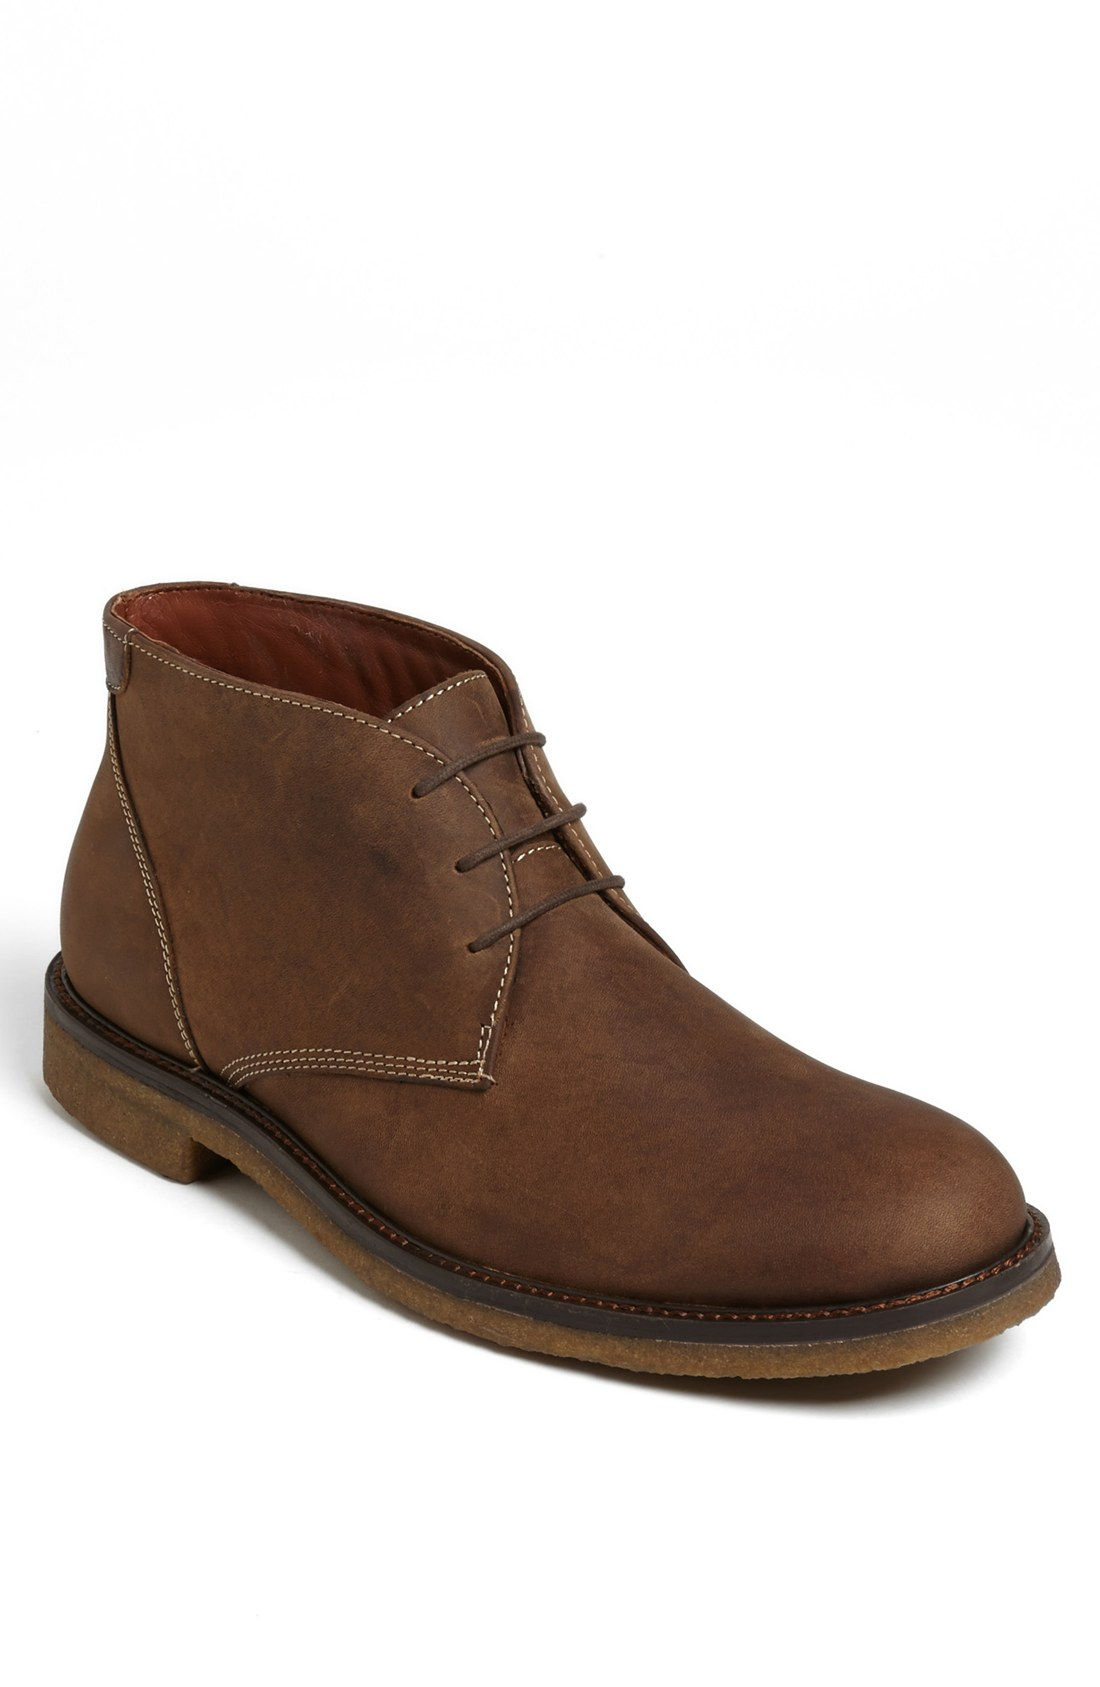 johnston murphy copeland suede chukka boot in brown for